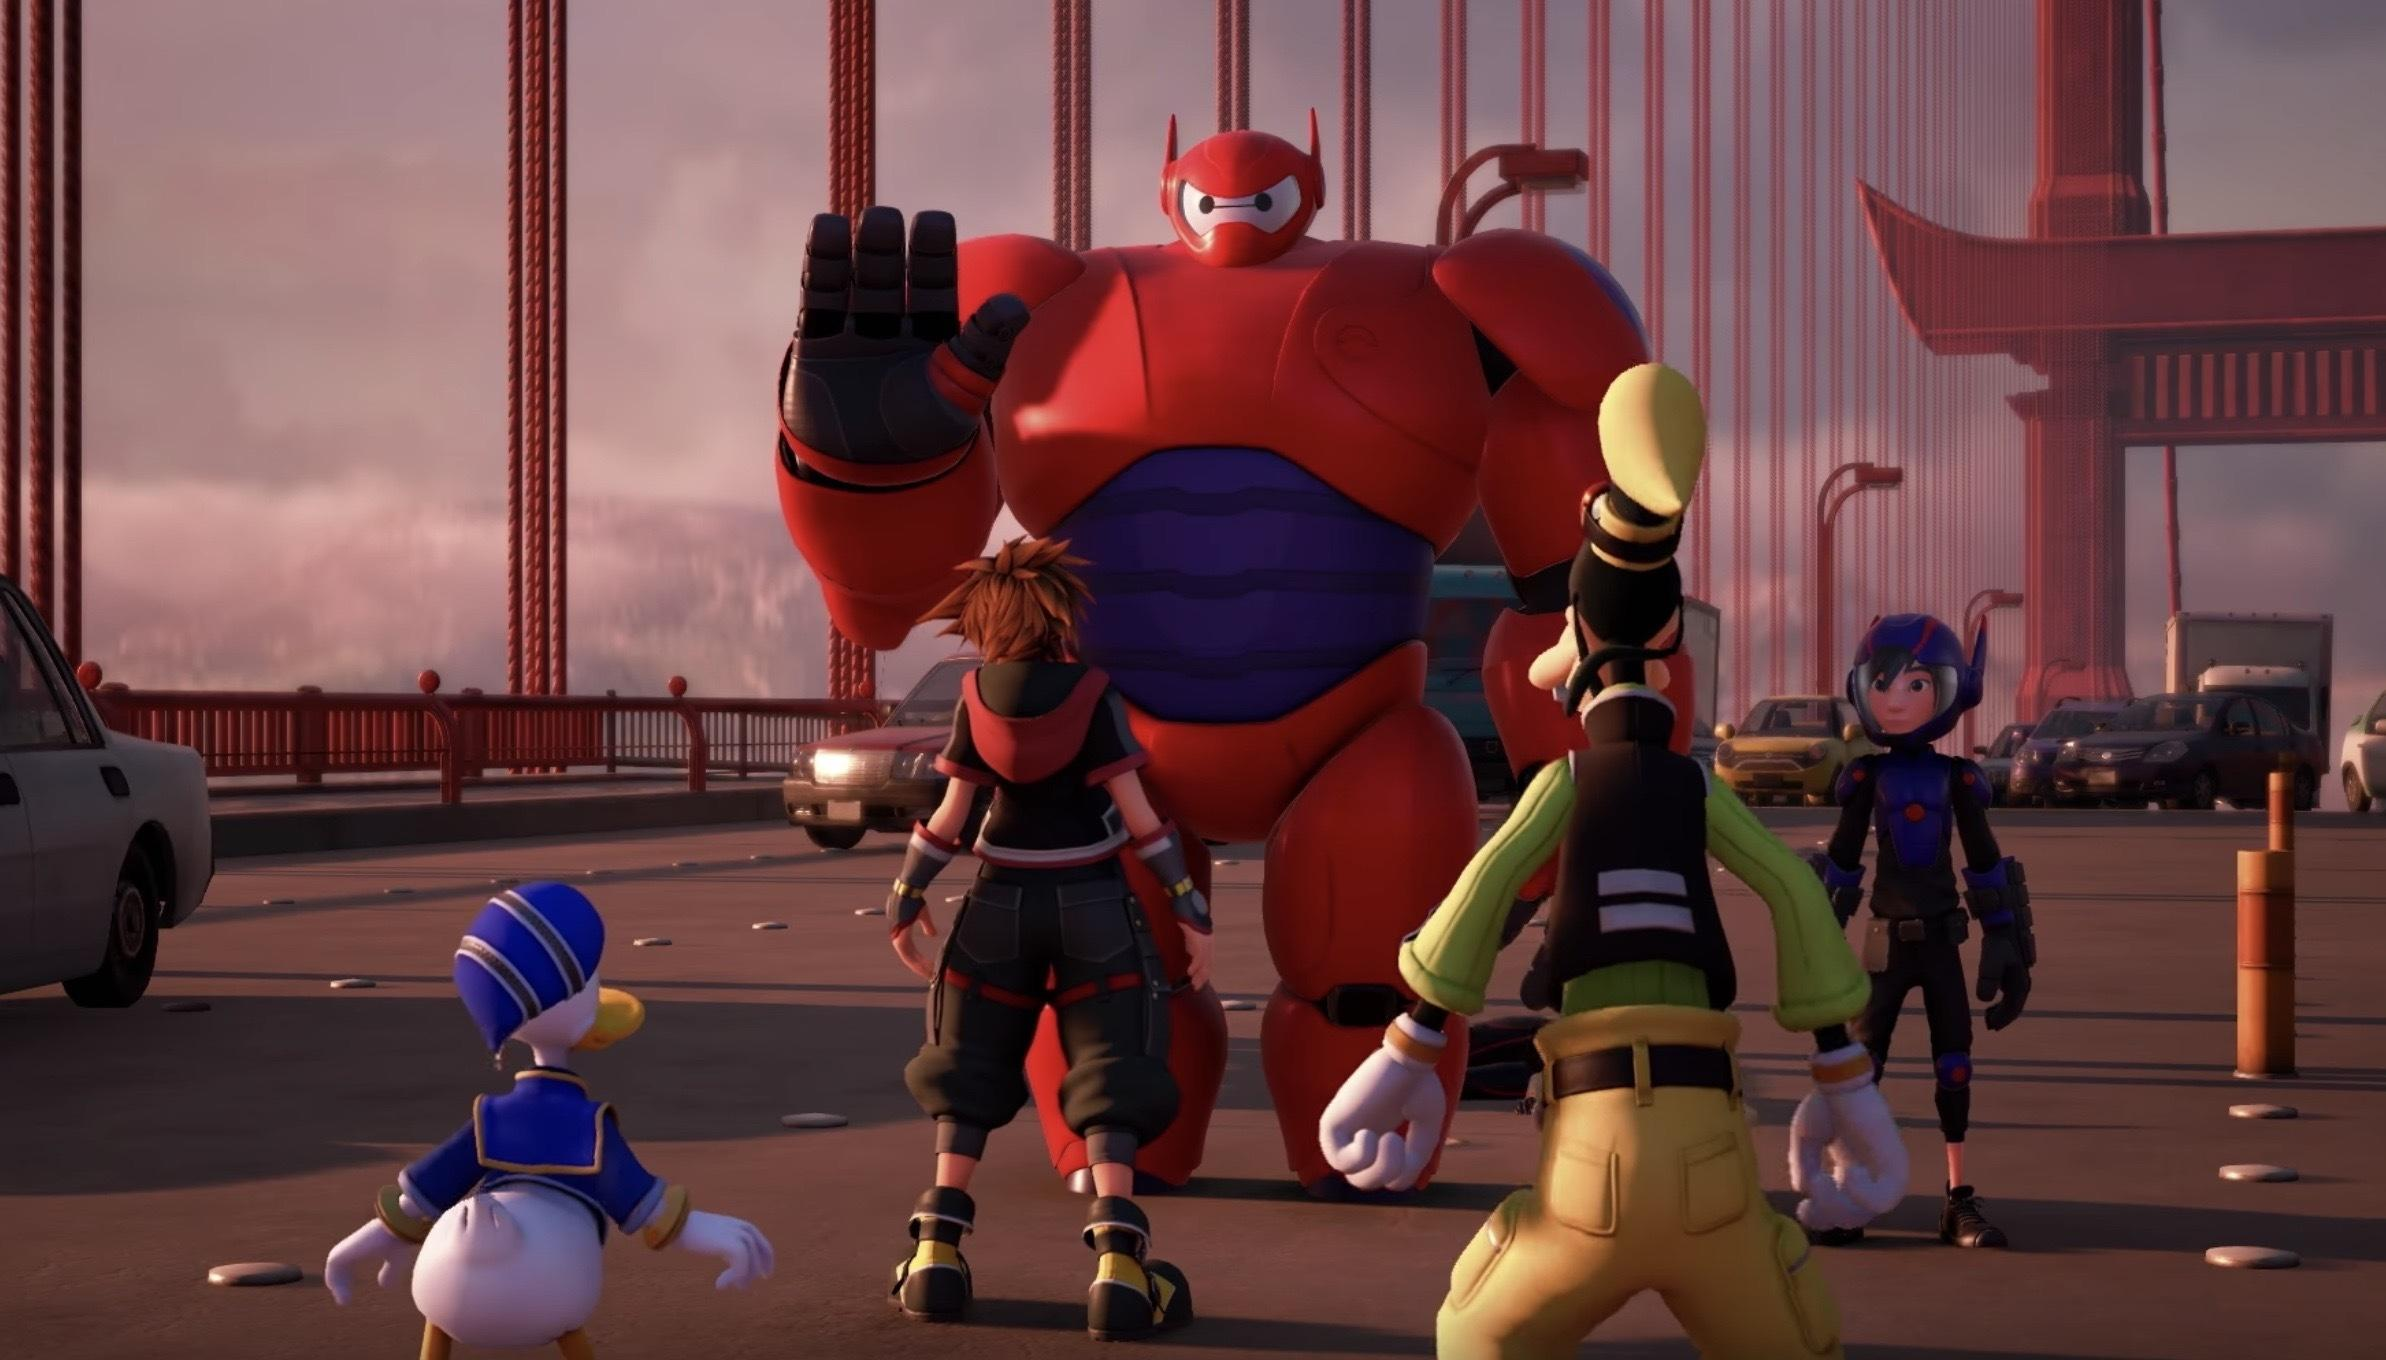 Kingdom Hearts 3 Extended TGS 2018 Trailer Looks Amazing